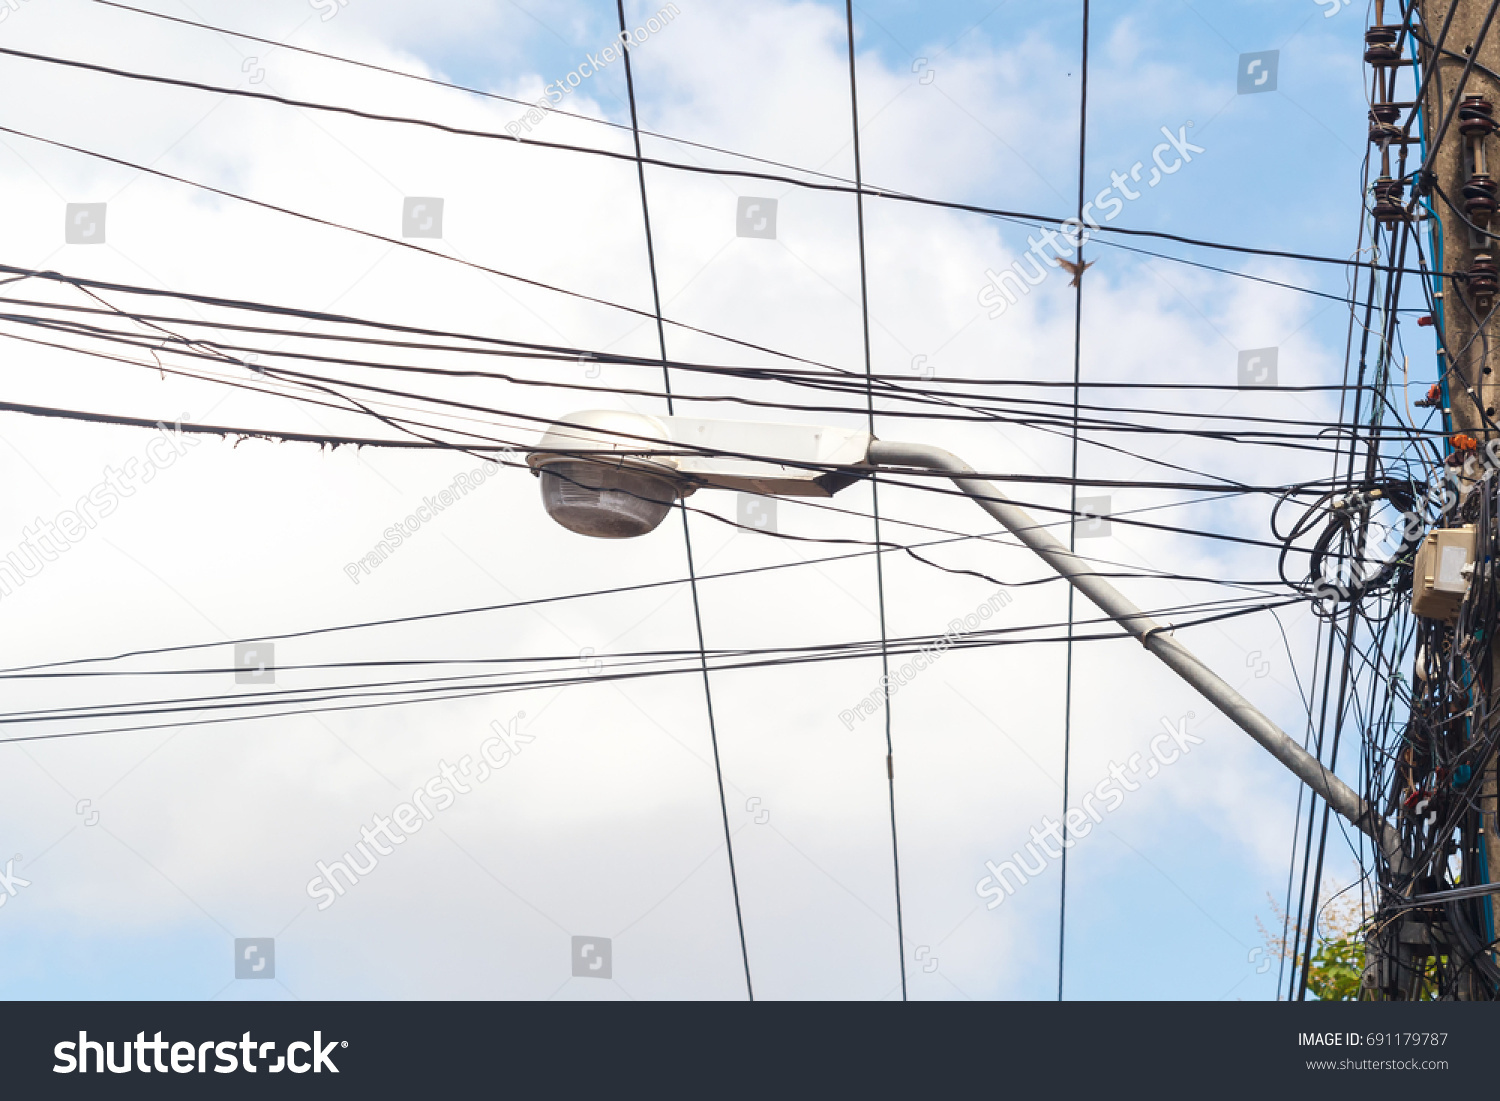 Tangled Electrical Wire On Electricity Post Stock Photo (Safe to Use ...